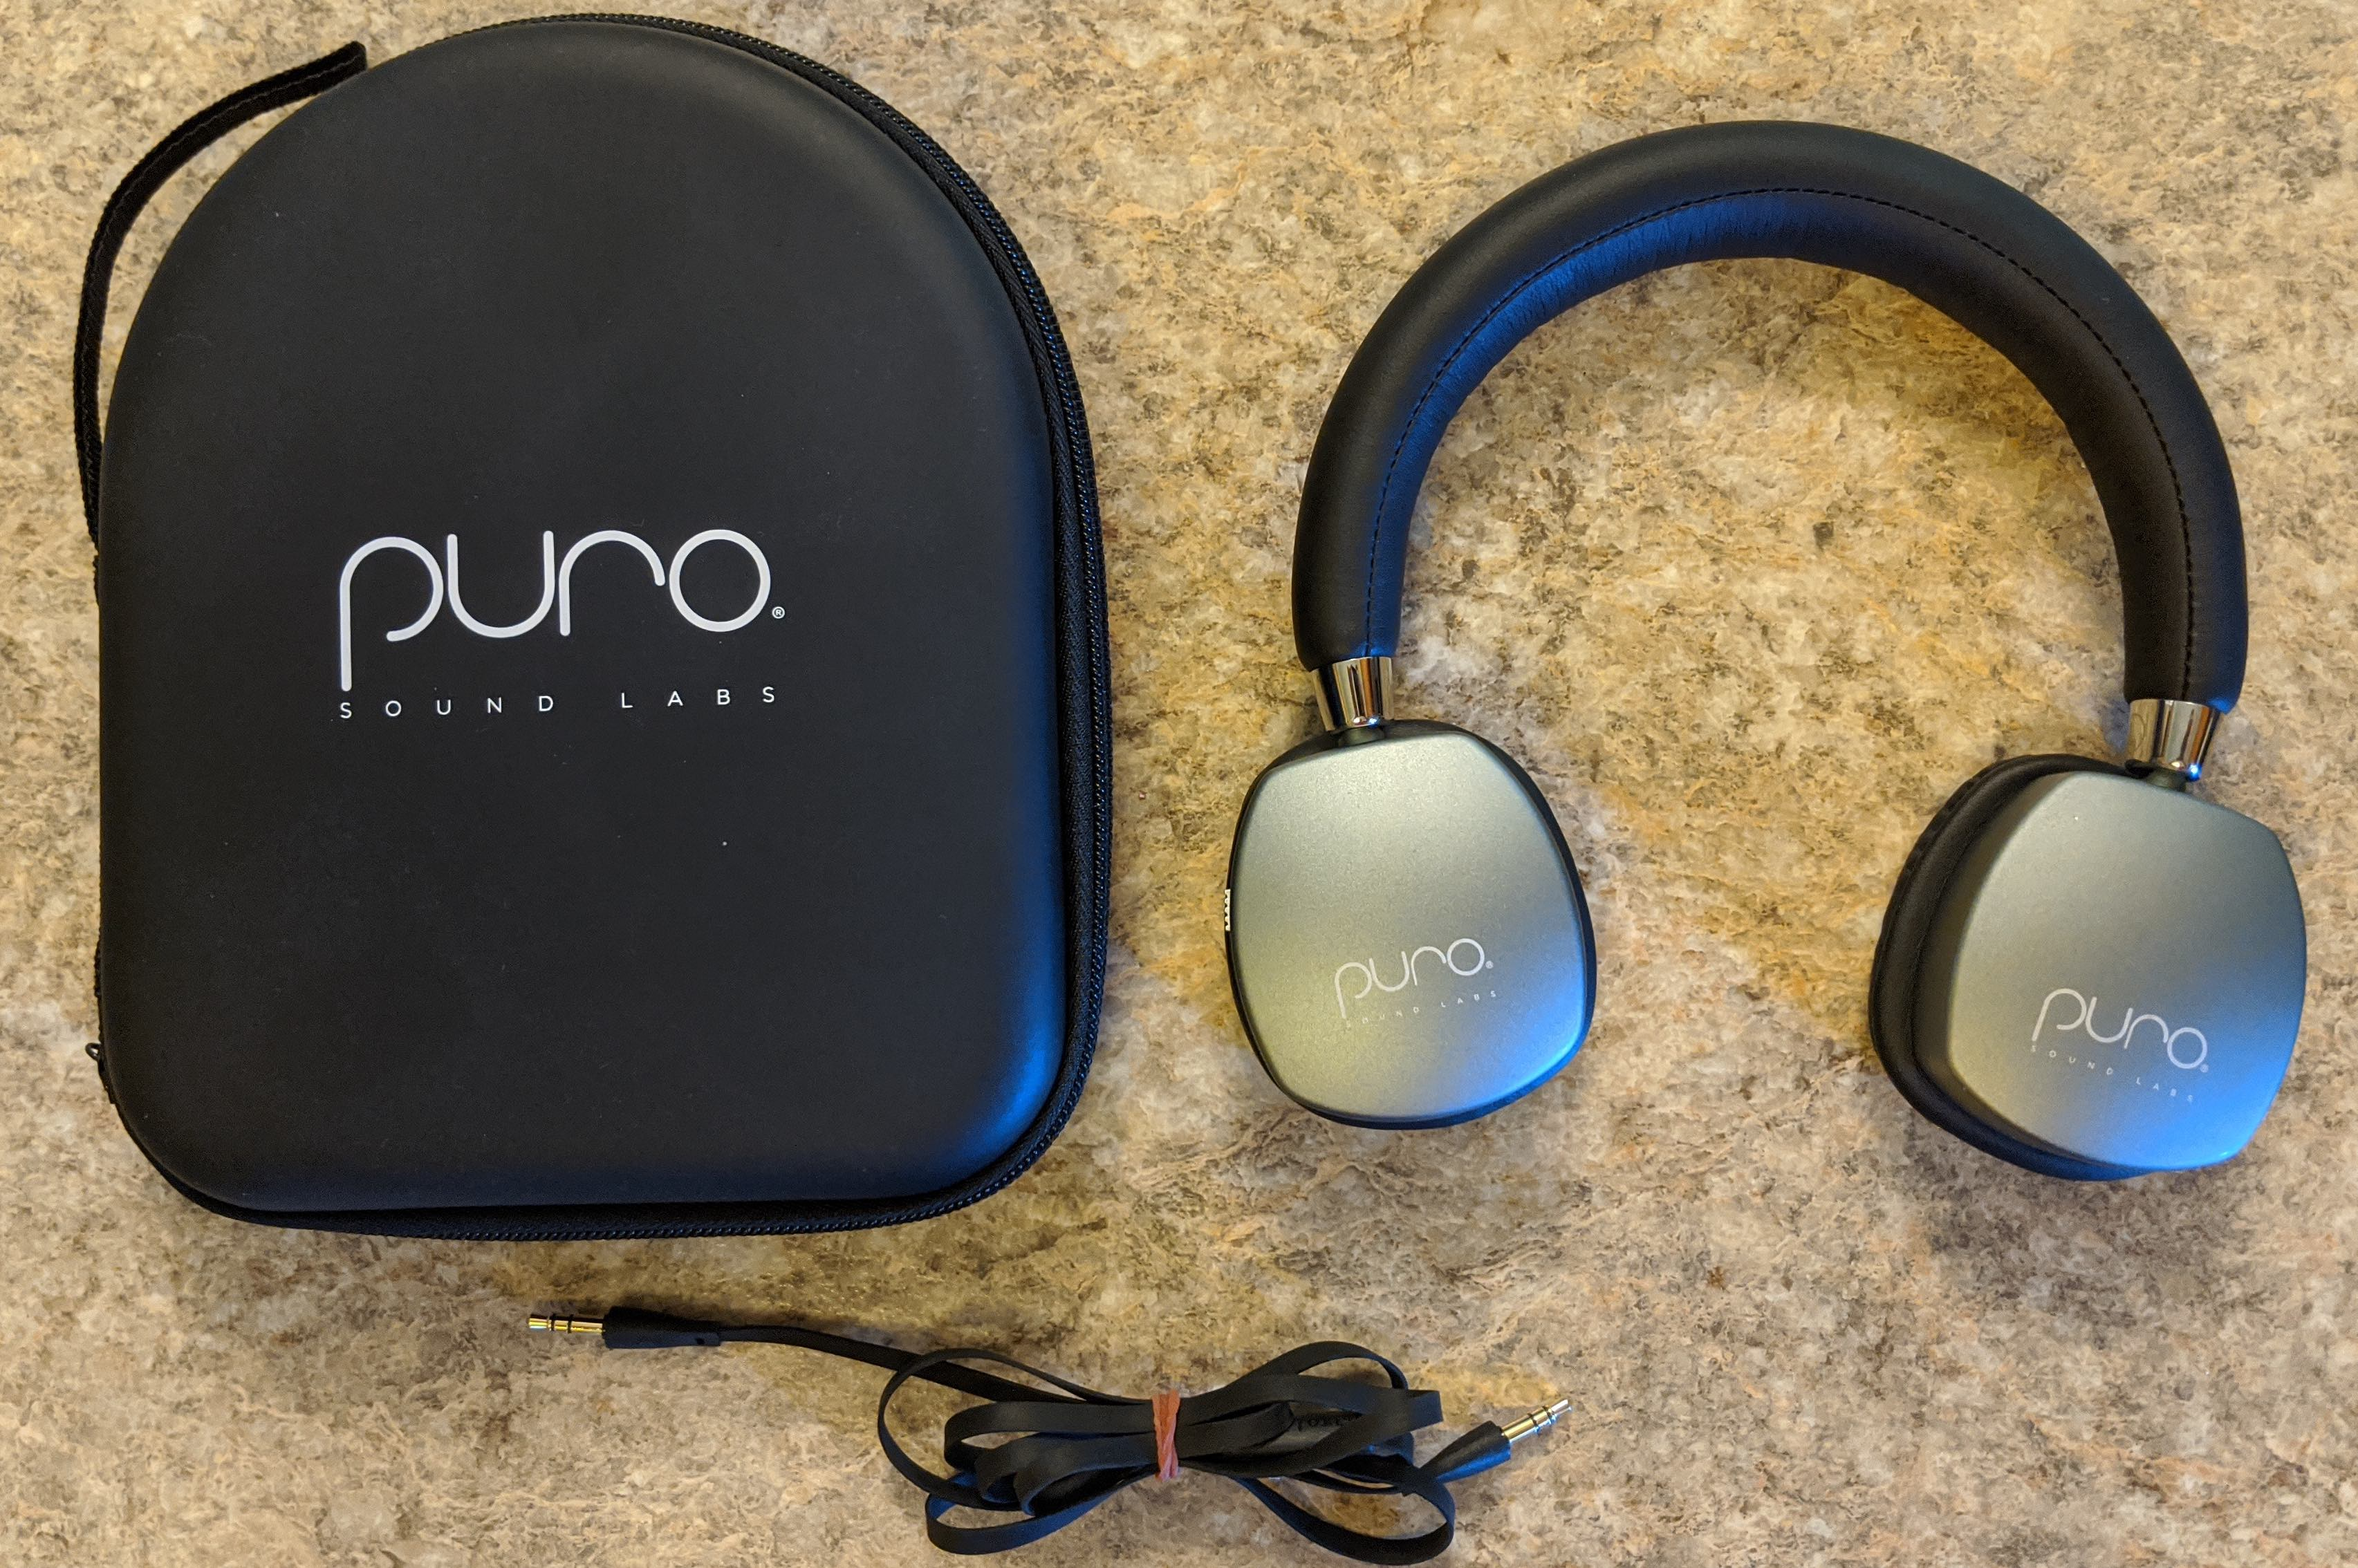 PuroQuiet headphones with case and phono cable.